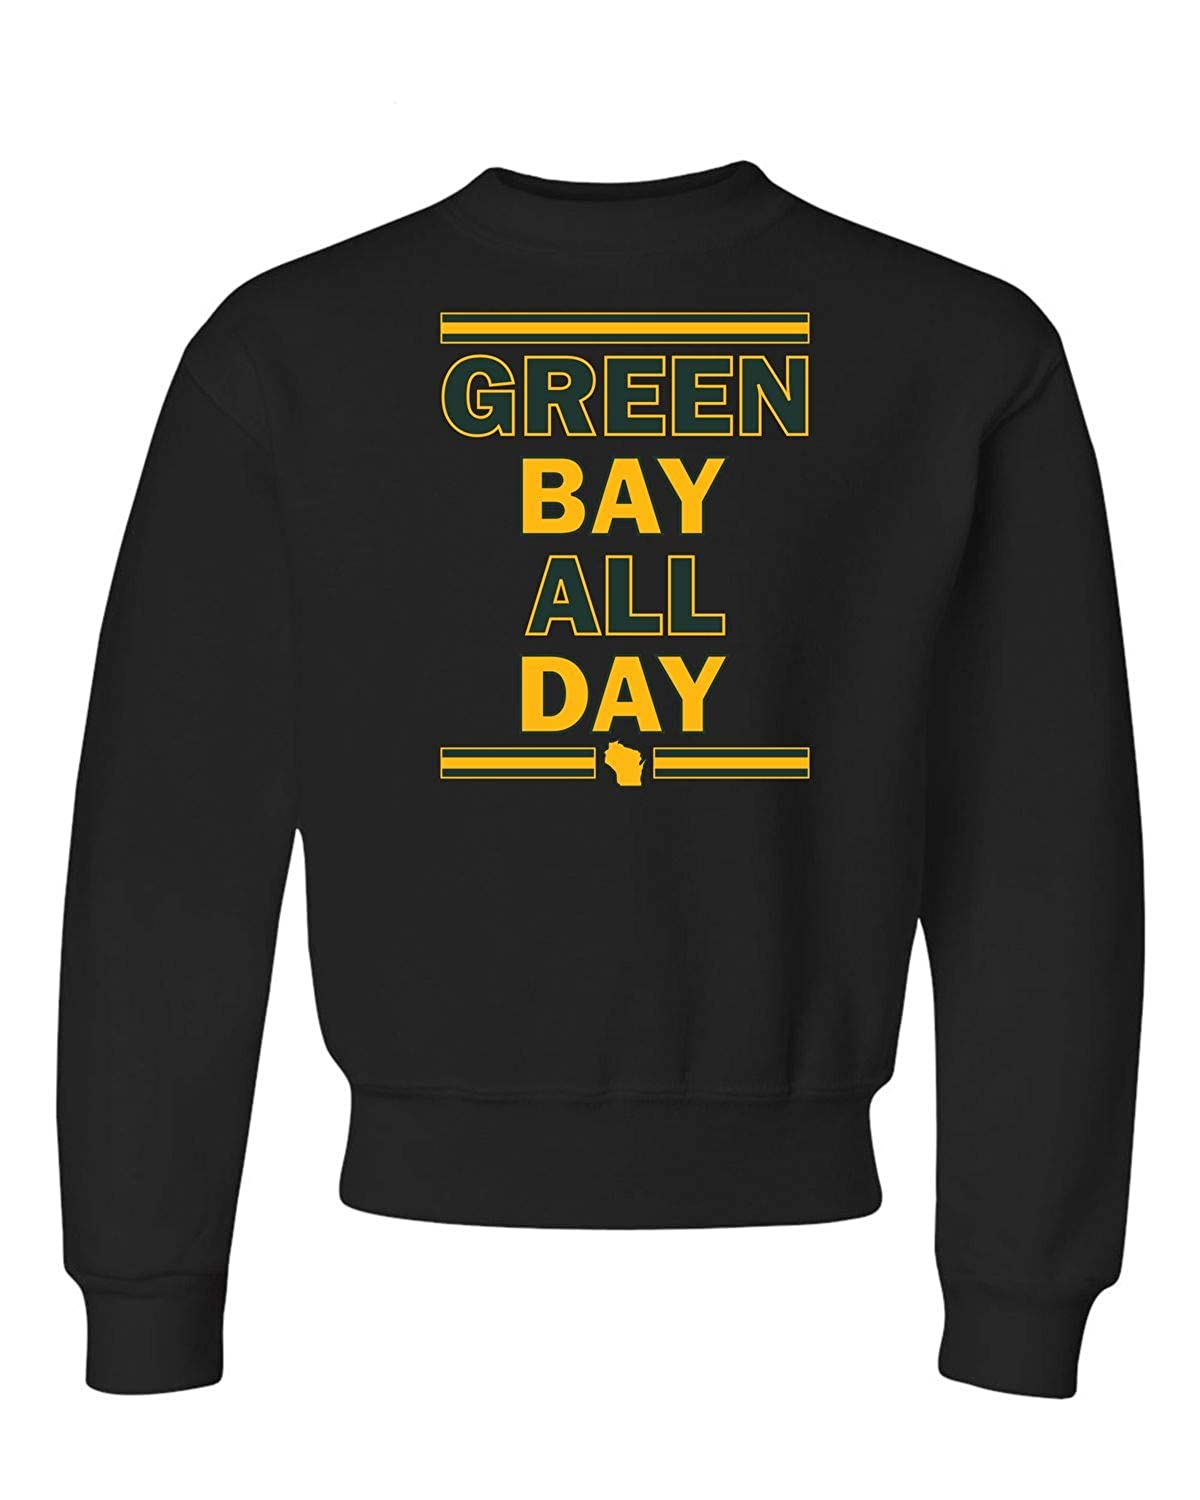 Go All Out Youth Green Bay All Day Crewneck Sweatshirt